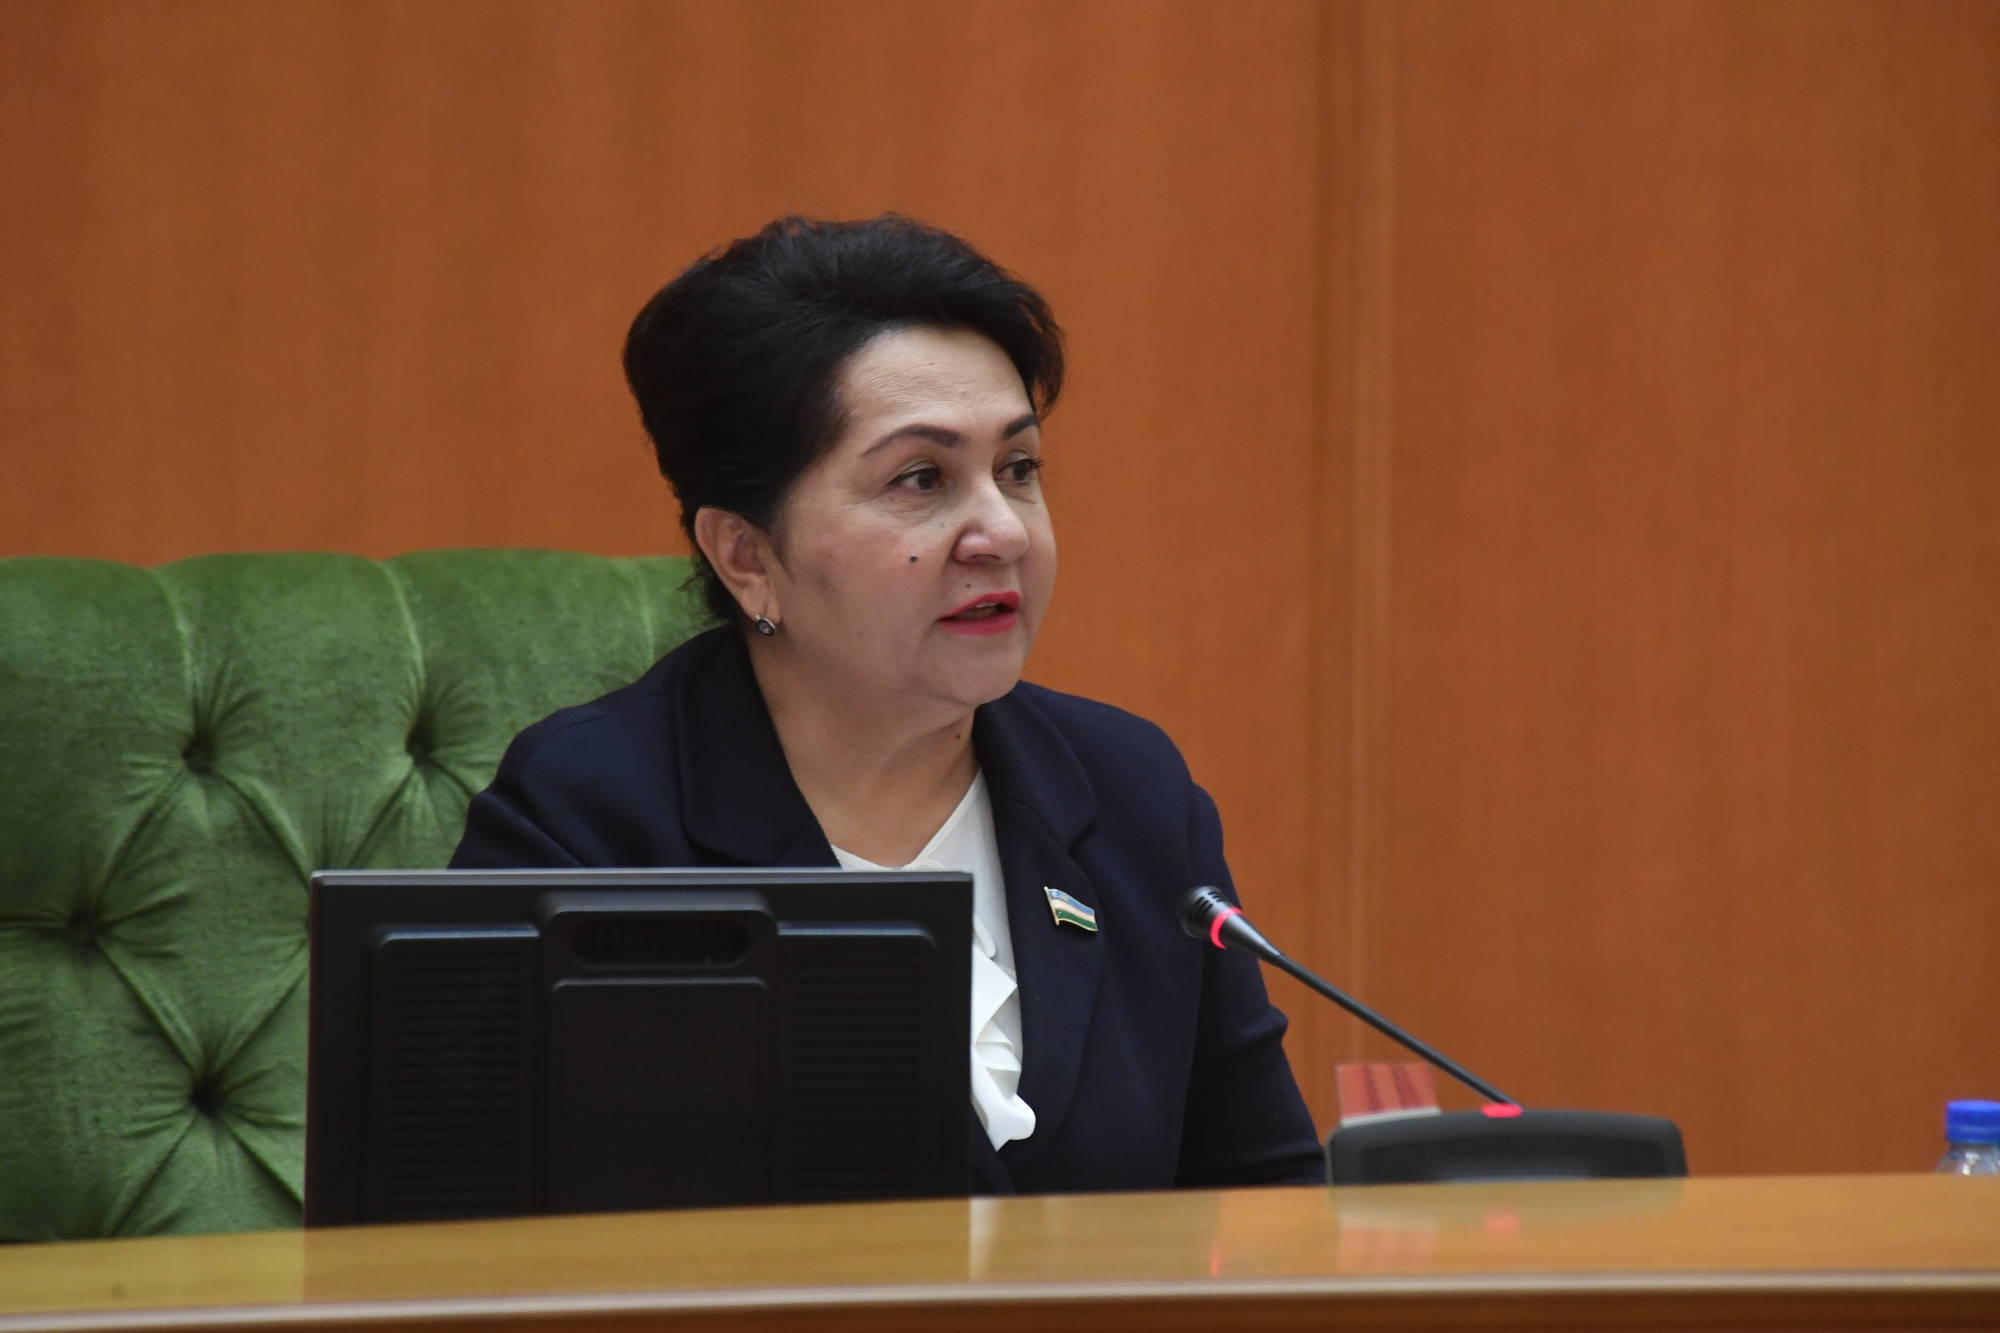 Senate speaker Tanzil Narbayeva concedes more needs to be done to monitor expectant mothers. (Photo: Xalq So'zi newspaper)